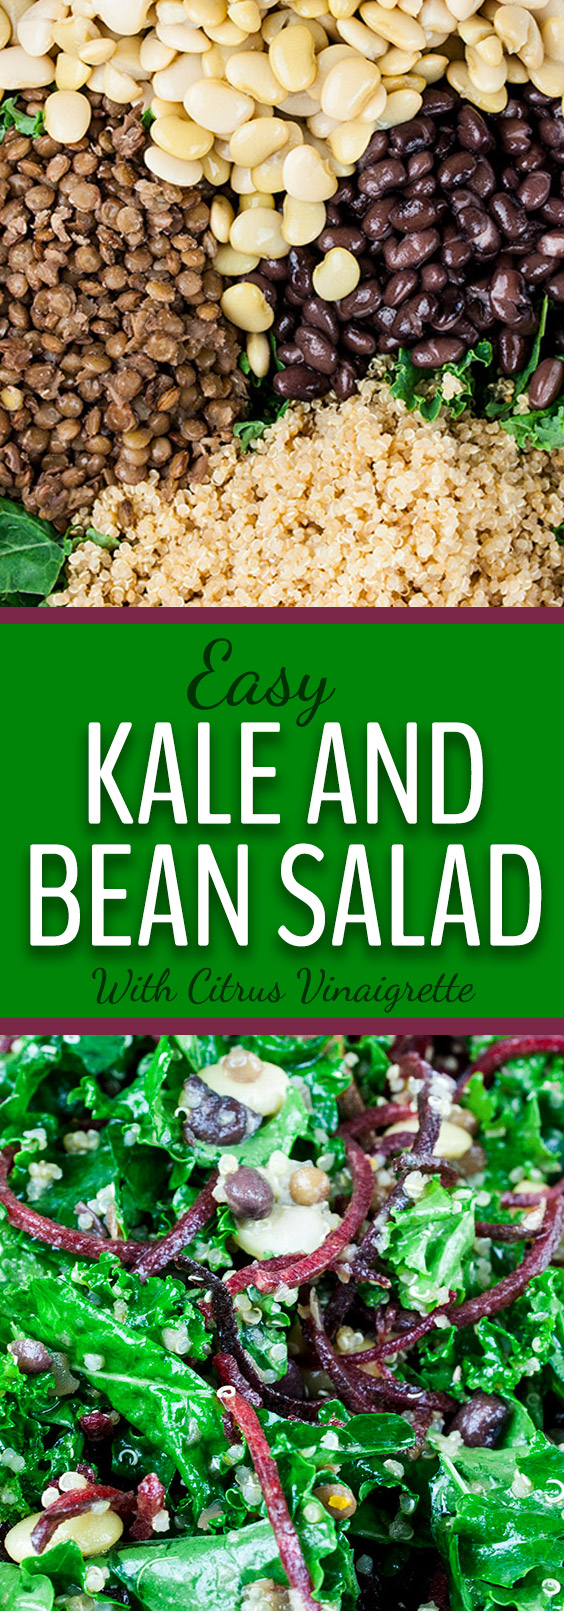 Kale and Bean Salad - An easy nutrient-rich kale and bean salad dressed with a tangy citrus vinaigrette. My version of the Long Life salad.